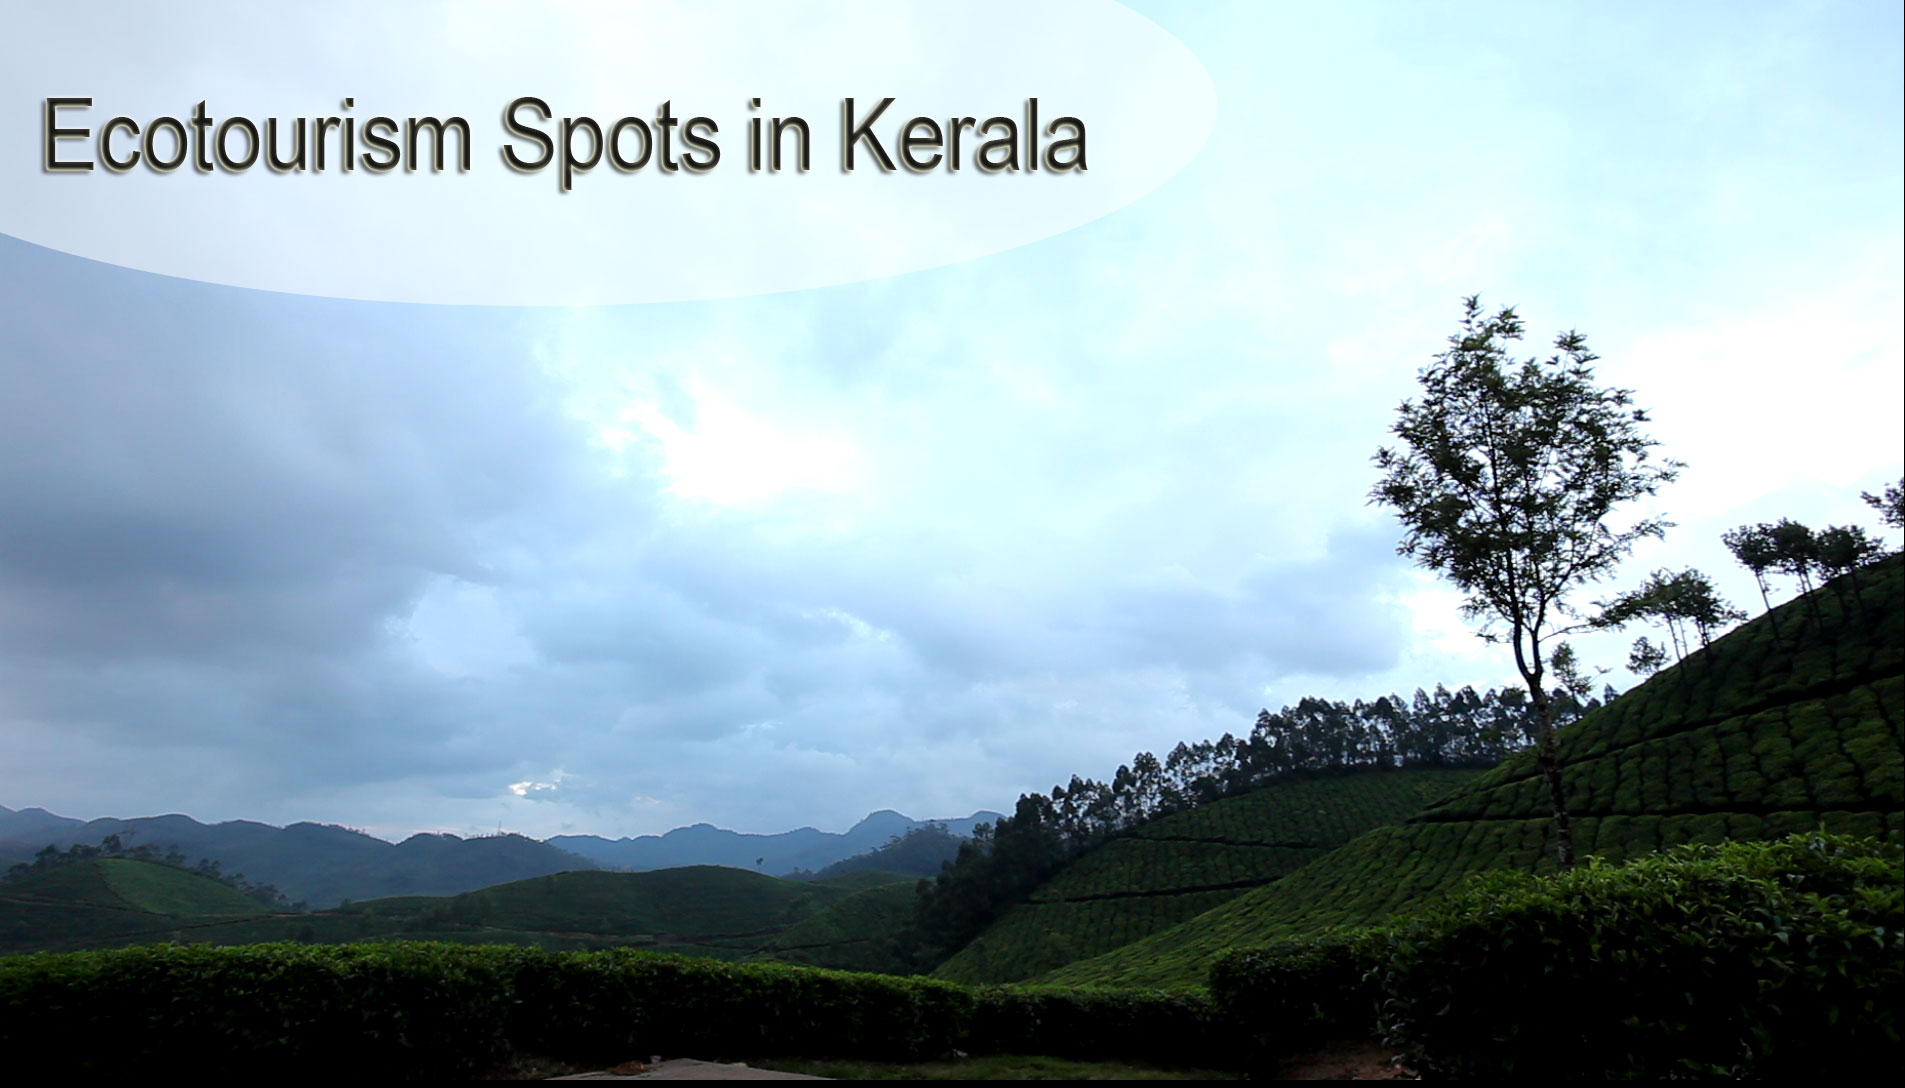 Top 10 Ecotourism Spots in Kerala